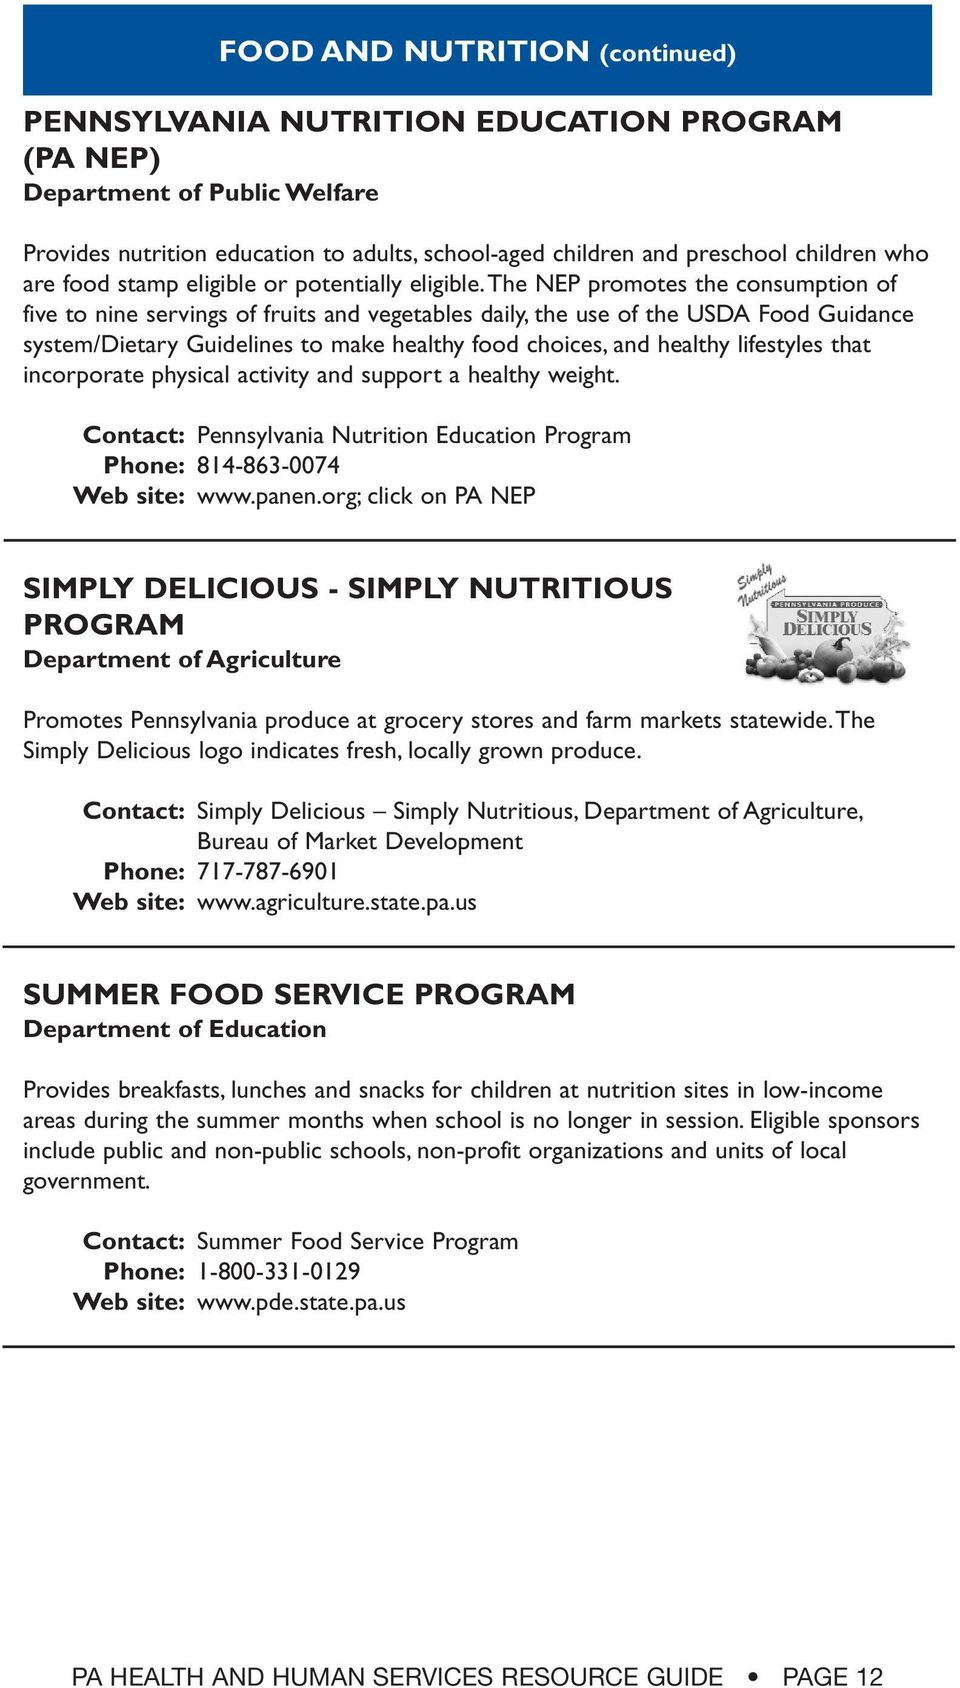 the NEP promotes the consumption of five to nine servings of fruits and vegetables daily, the use of the USDA Food Guidance system/dietary Guidelines to make healthy food choices, and healthy